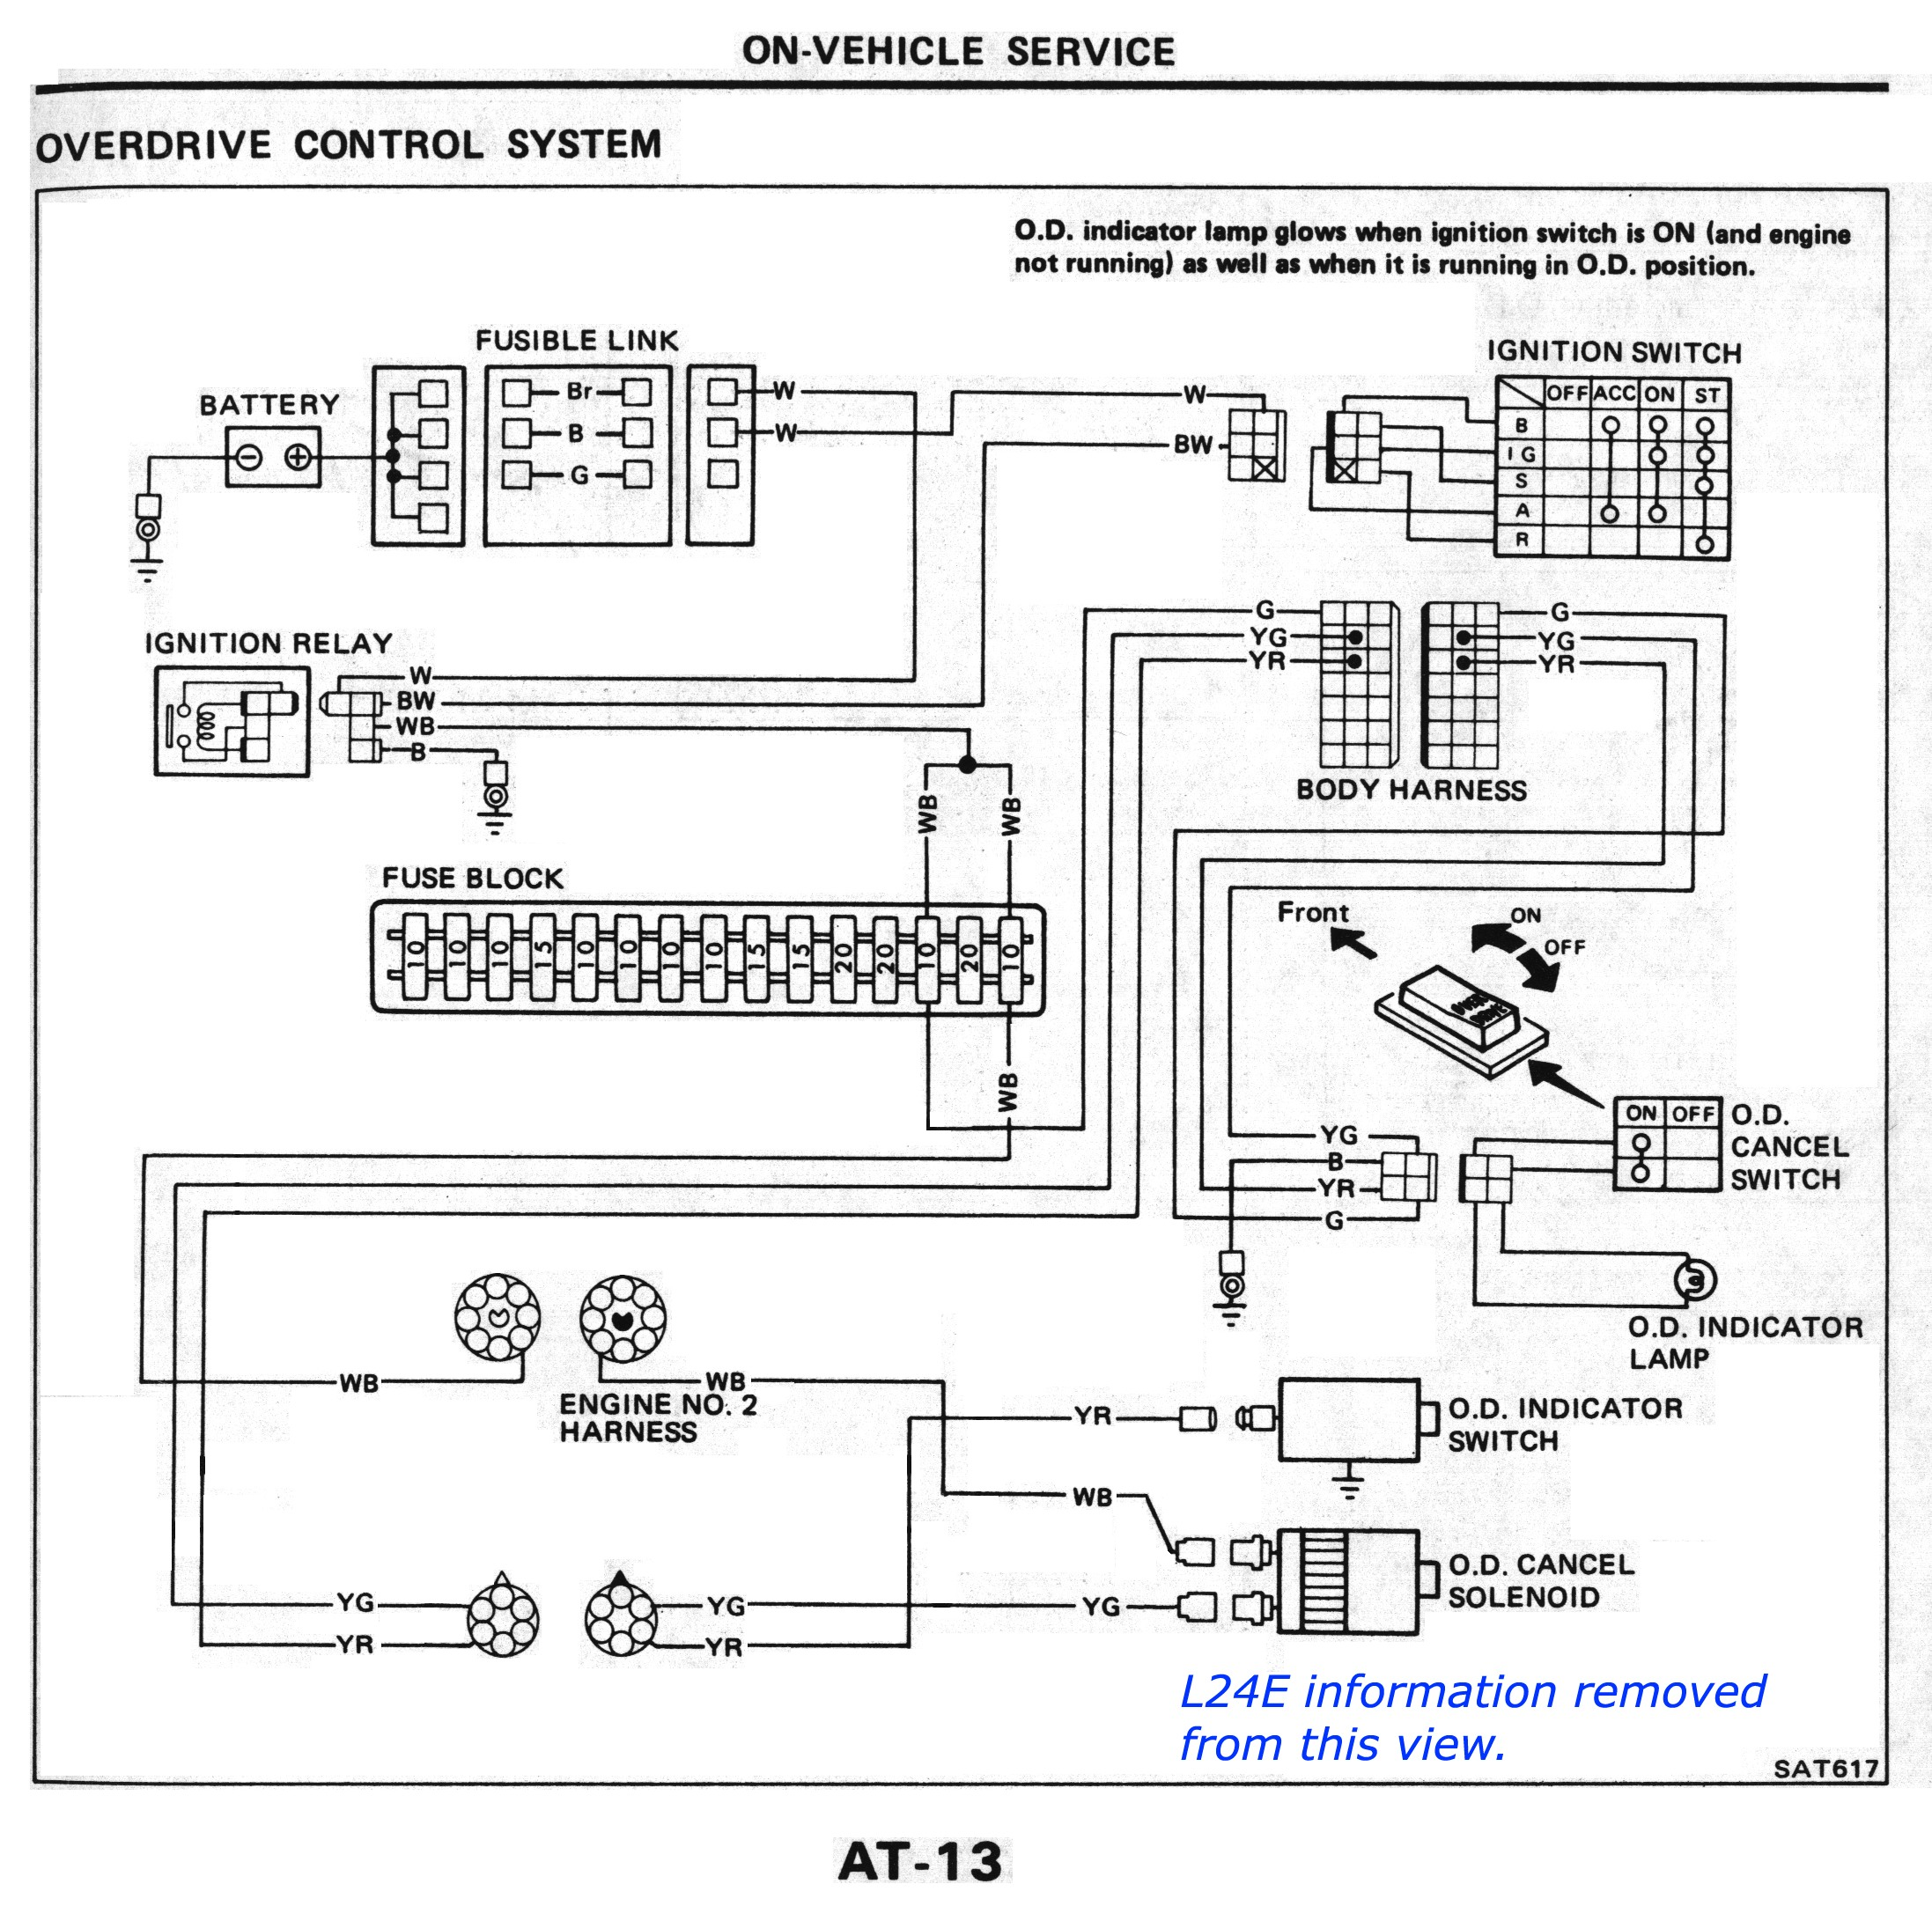 Ford 5r110w Transmission Diagram Electrical Wiring Diagrams E4od Harness 5r110 Block And Schematic U2022 E40d